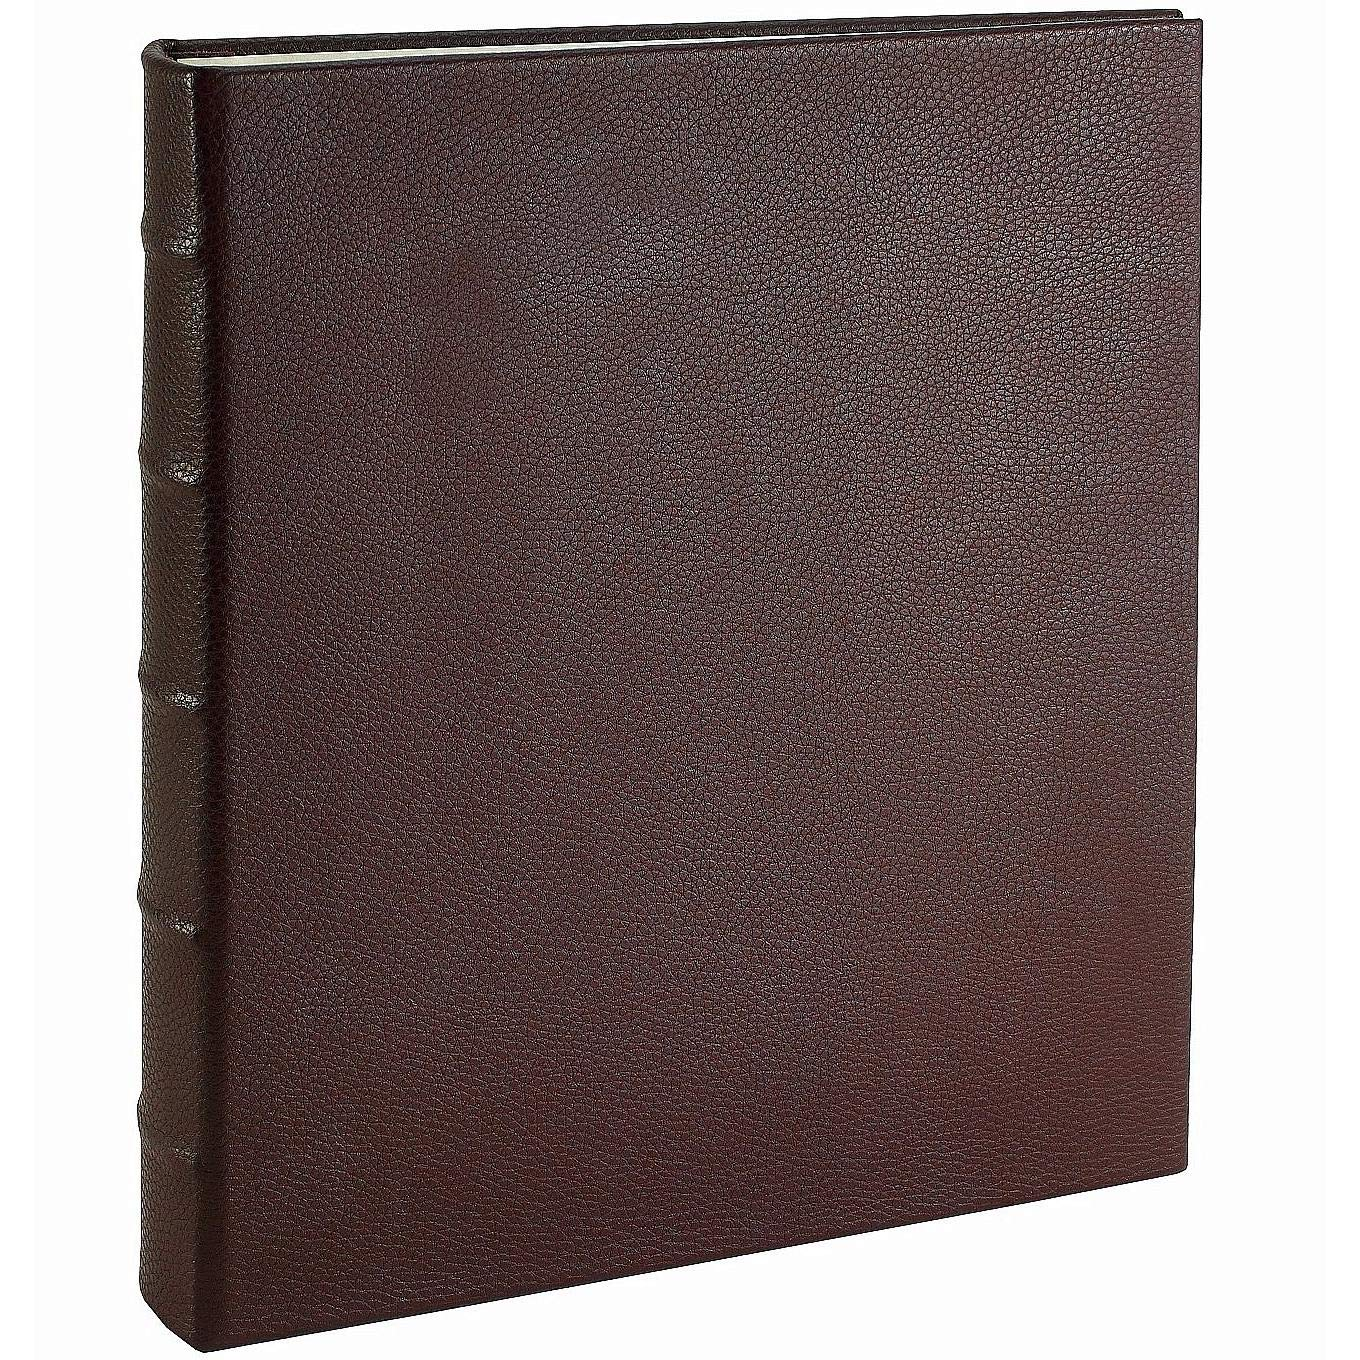 Post Impressions™ System Standard 3-ring Binder unfilled Pebble-Brown Eco-leather - 8.5x11